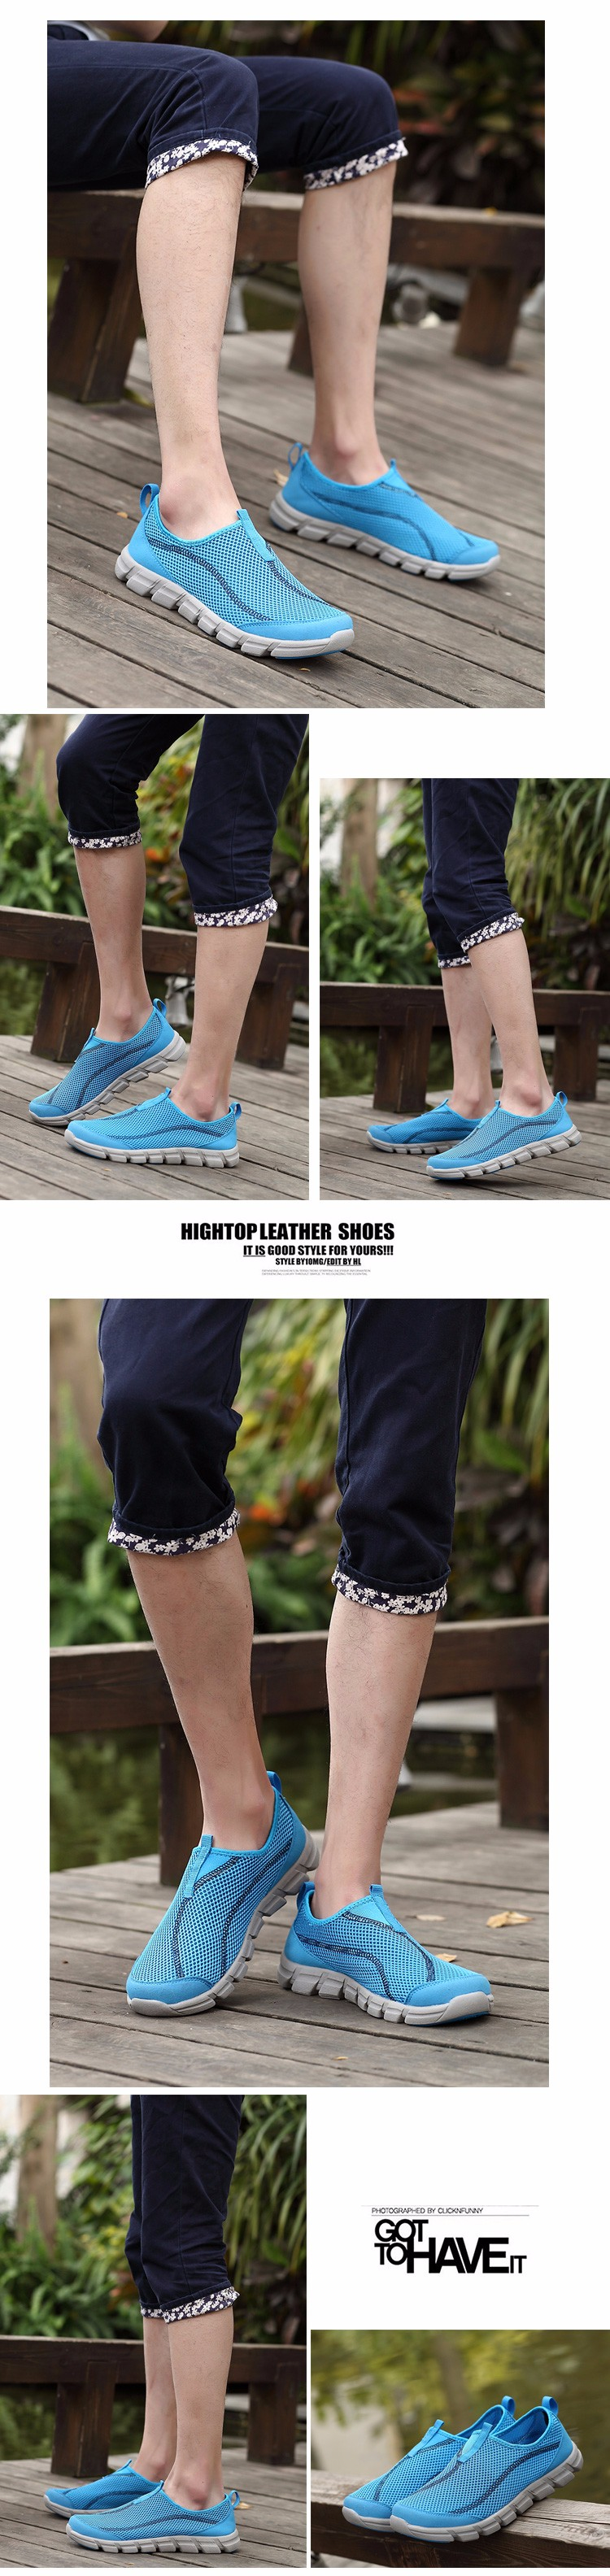 LEMAI 16 New Cool Athletic Men Sneakers Summer Breathable Mesh Sport Shoes For Men Outdoor Super Light Running Shoes FB013 15